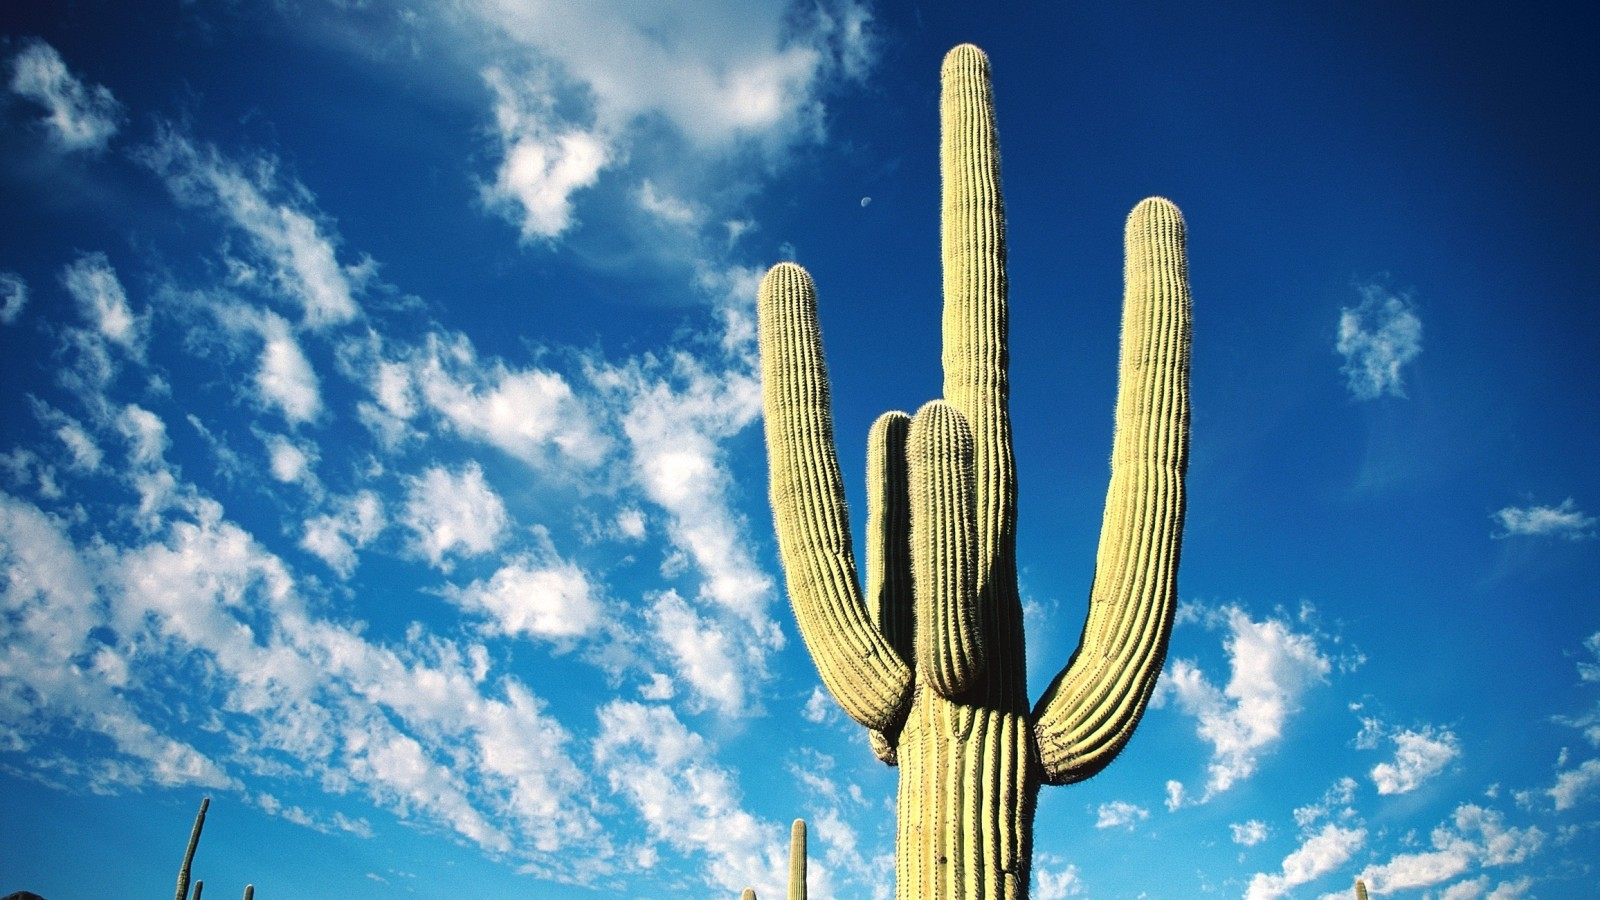 Beautiful Cactus Wallpaper